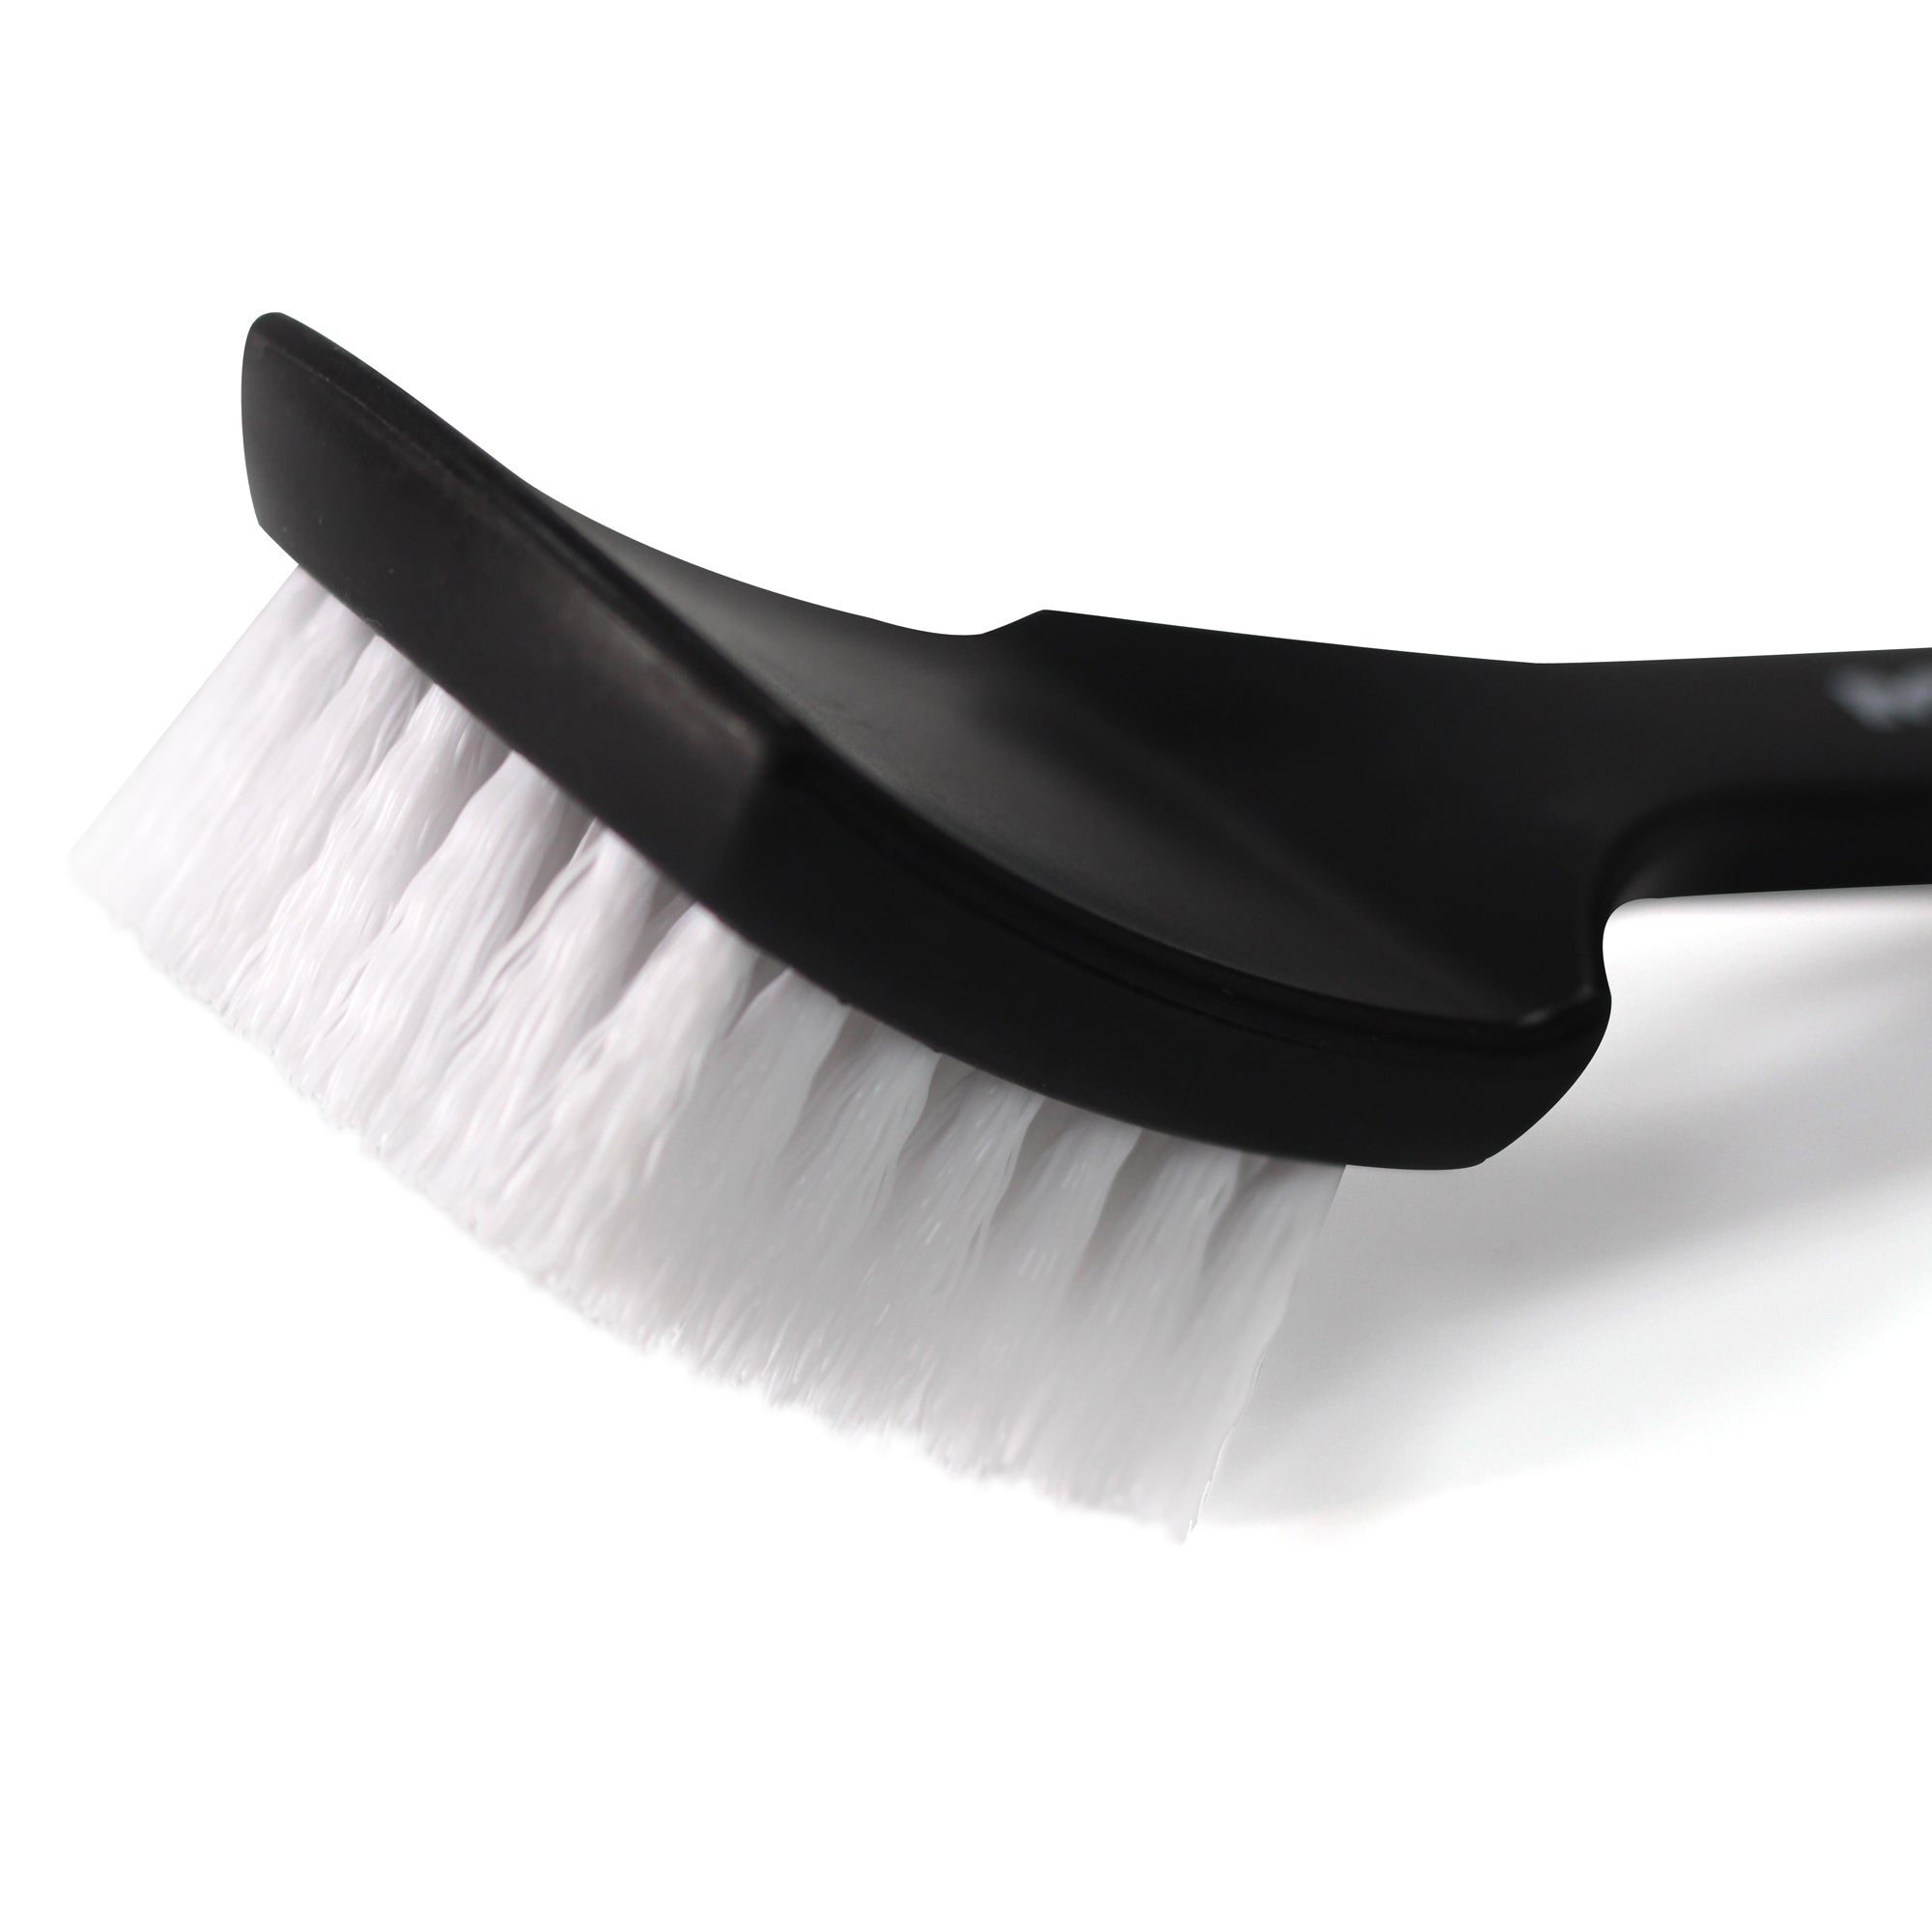 Tire scrub brush - D-Tail Lab